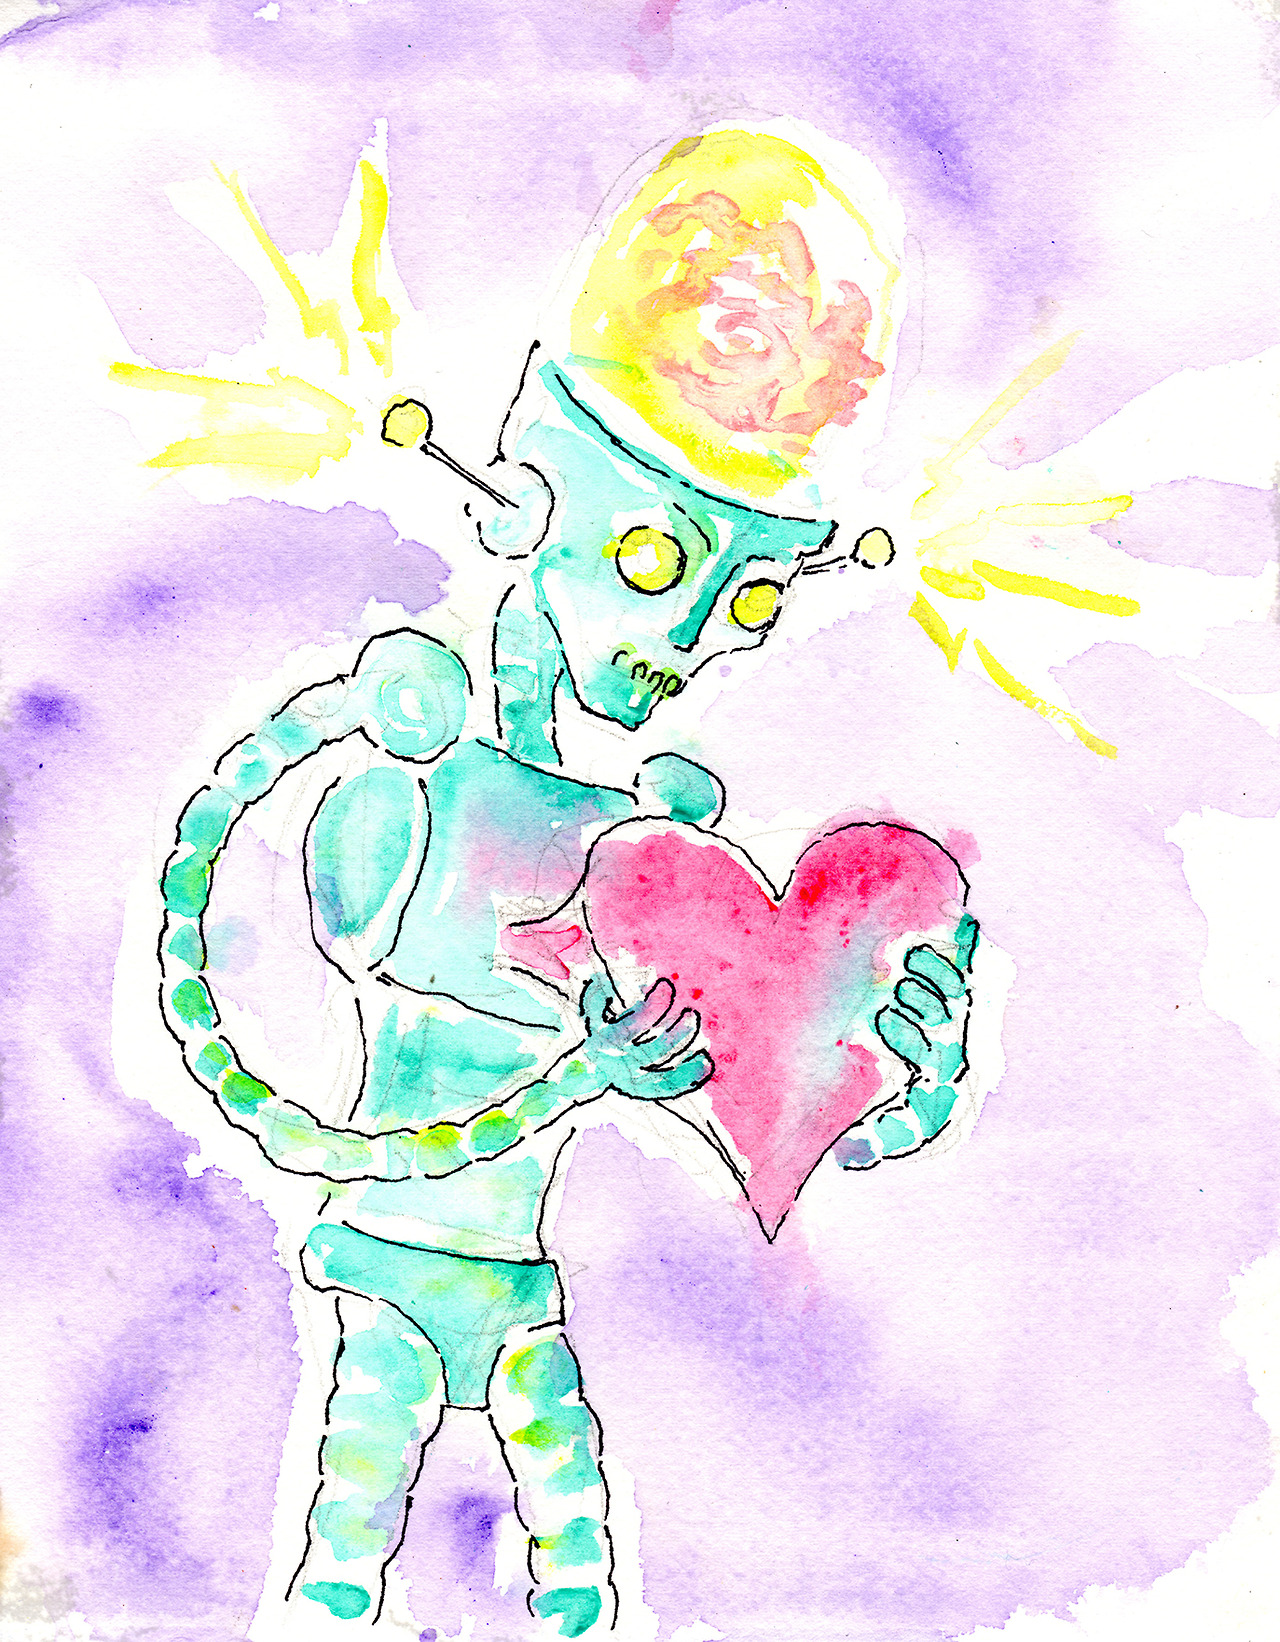 10/14/13 -  Brain Forces the Love Back Inside .   Some days the brain might even win.   Buy it here:  http://taylorwinder.bigcartel.com    Prints here:  http://society6.com/taylorwinder